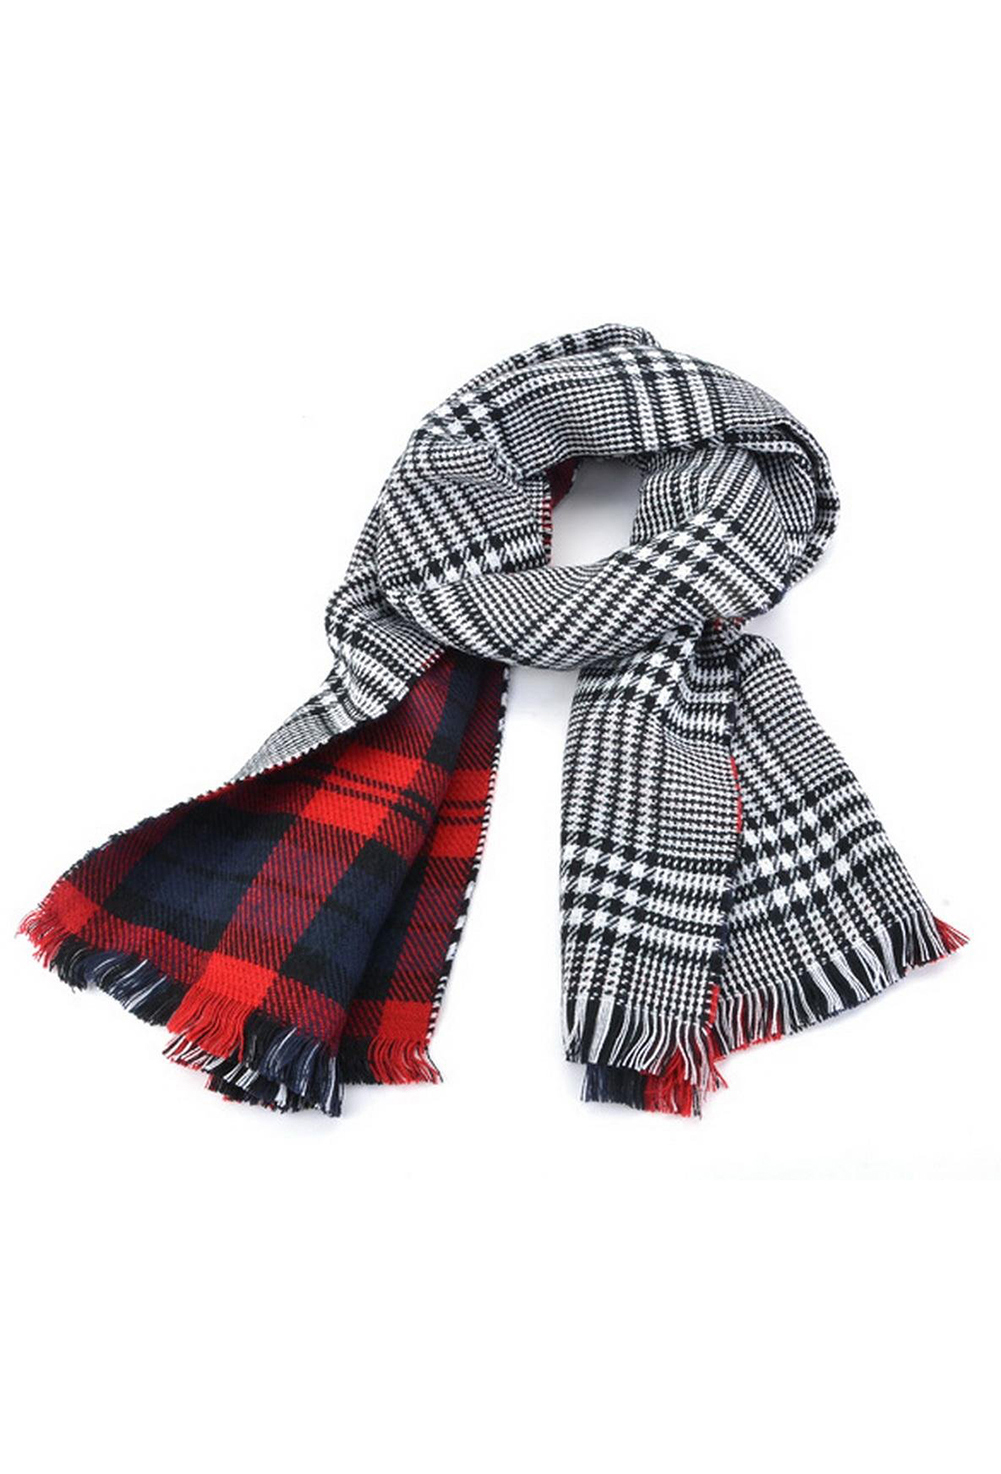 Lady Women s Long Check Plaid font b Tartan b font Scarf Wraps Shawl Stole Warm